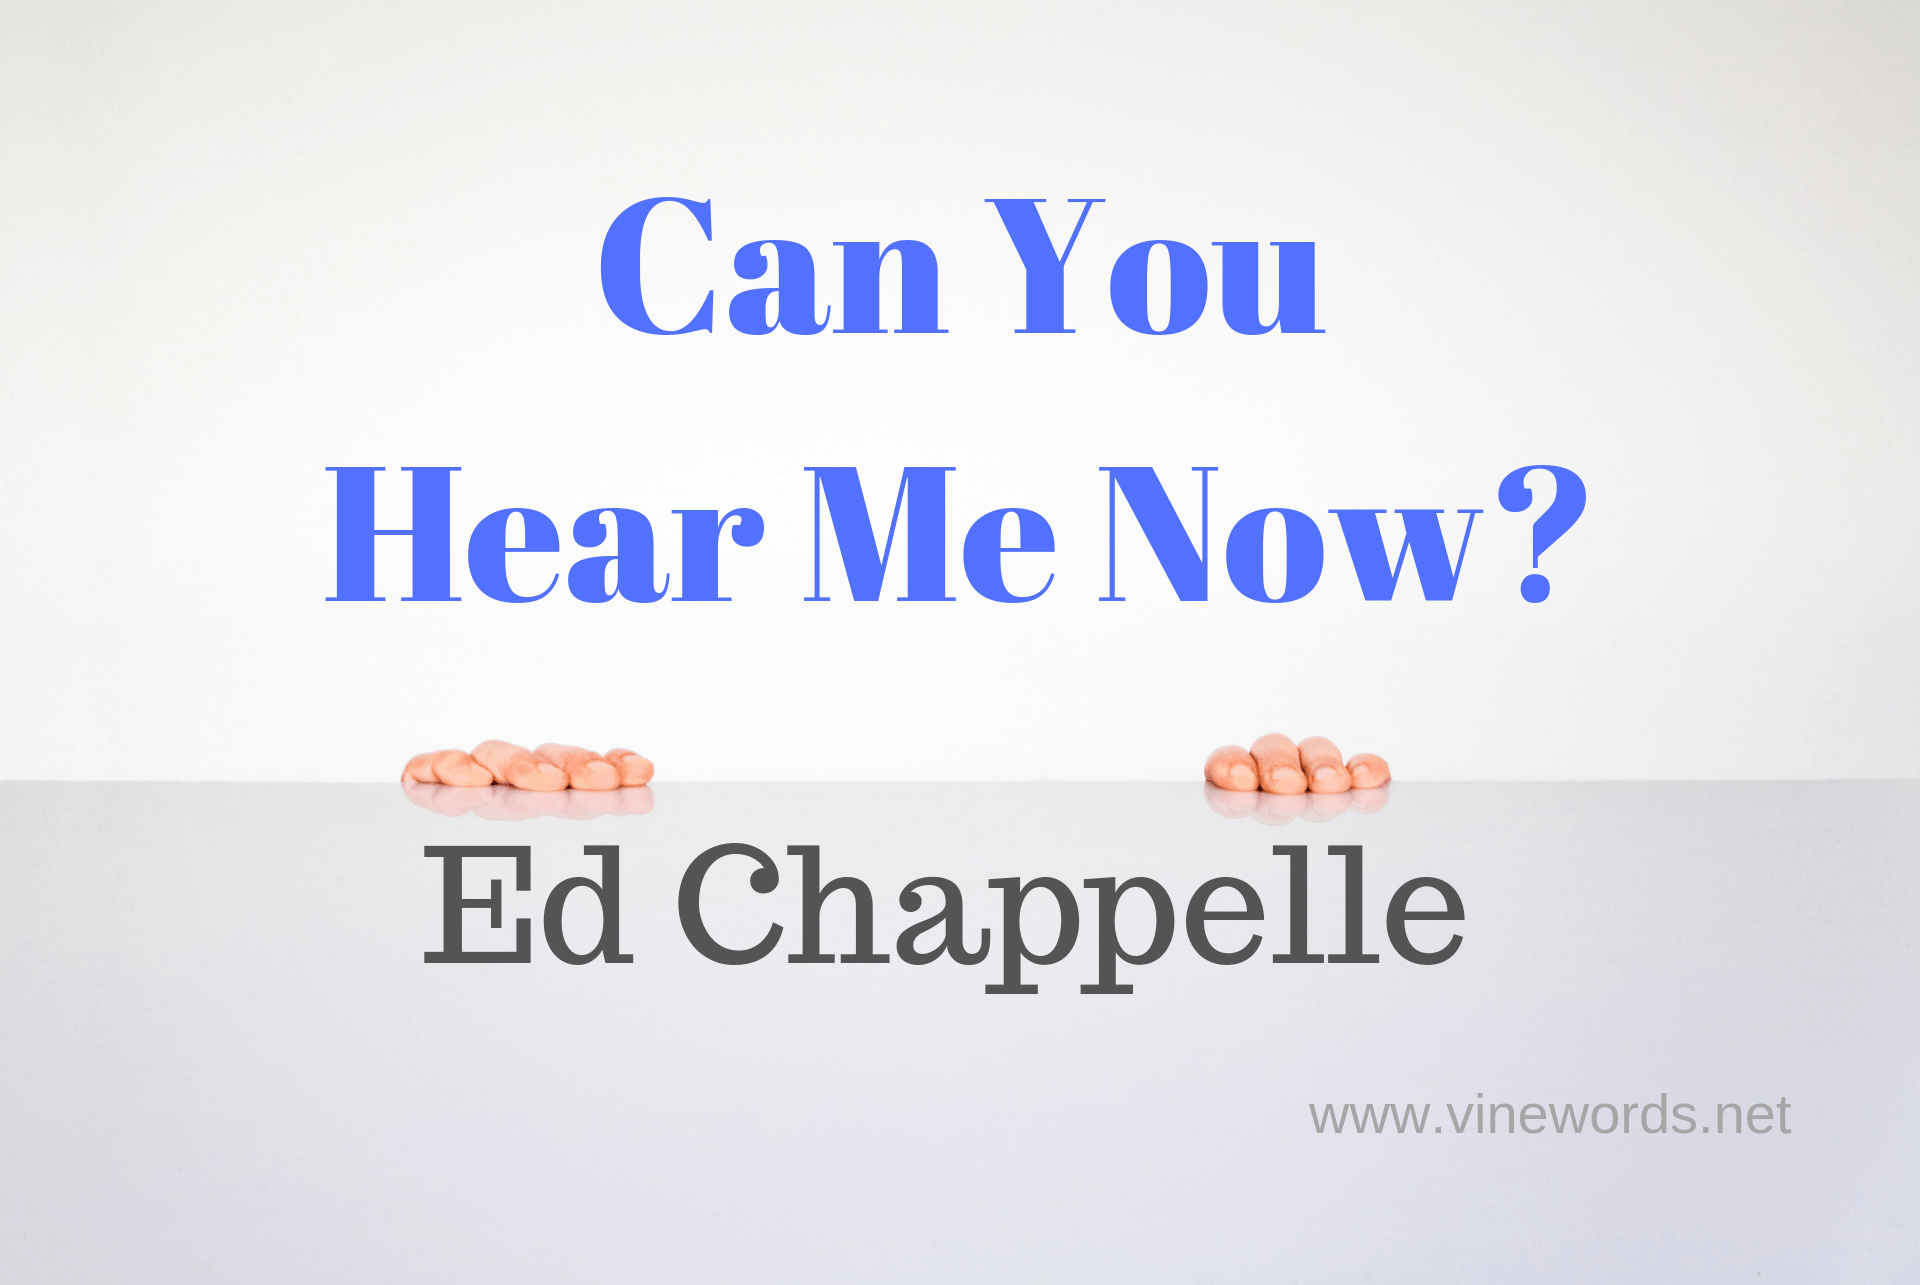 Ed Chappelle: Can You Hear Me Now?